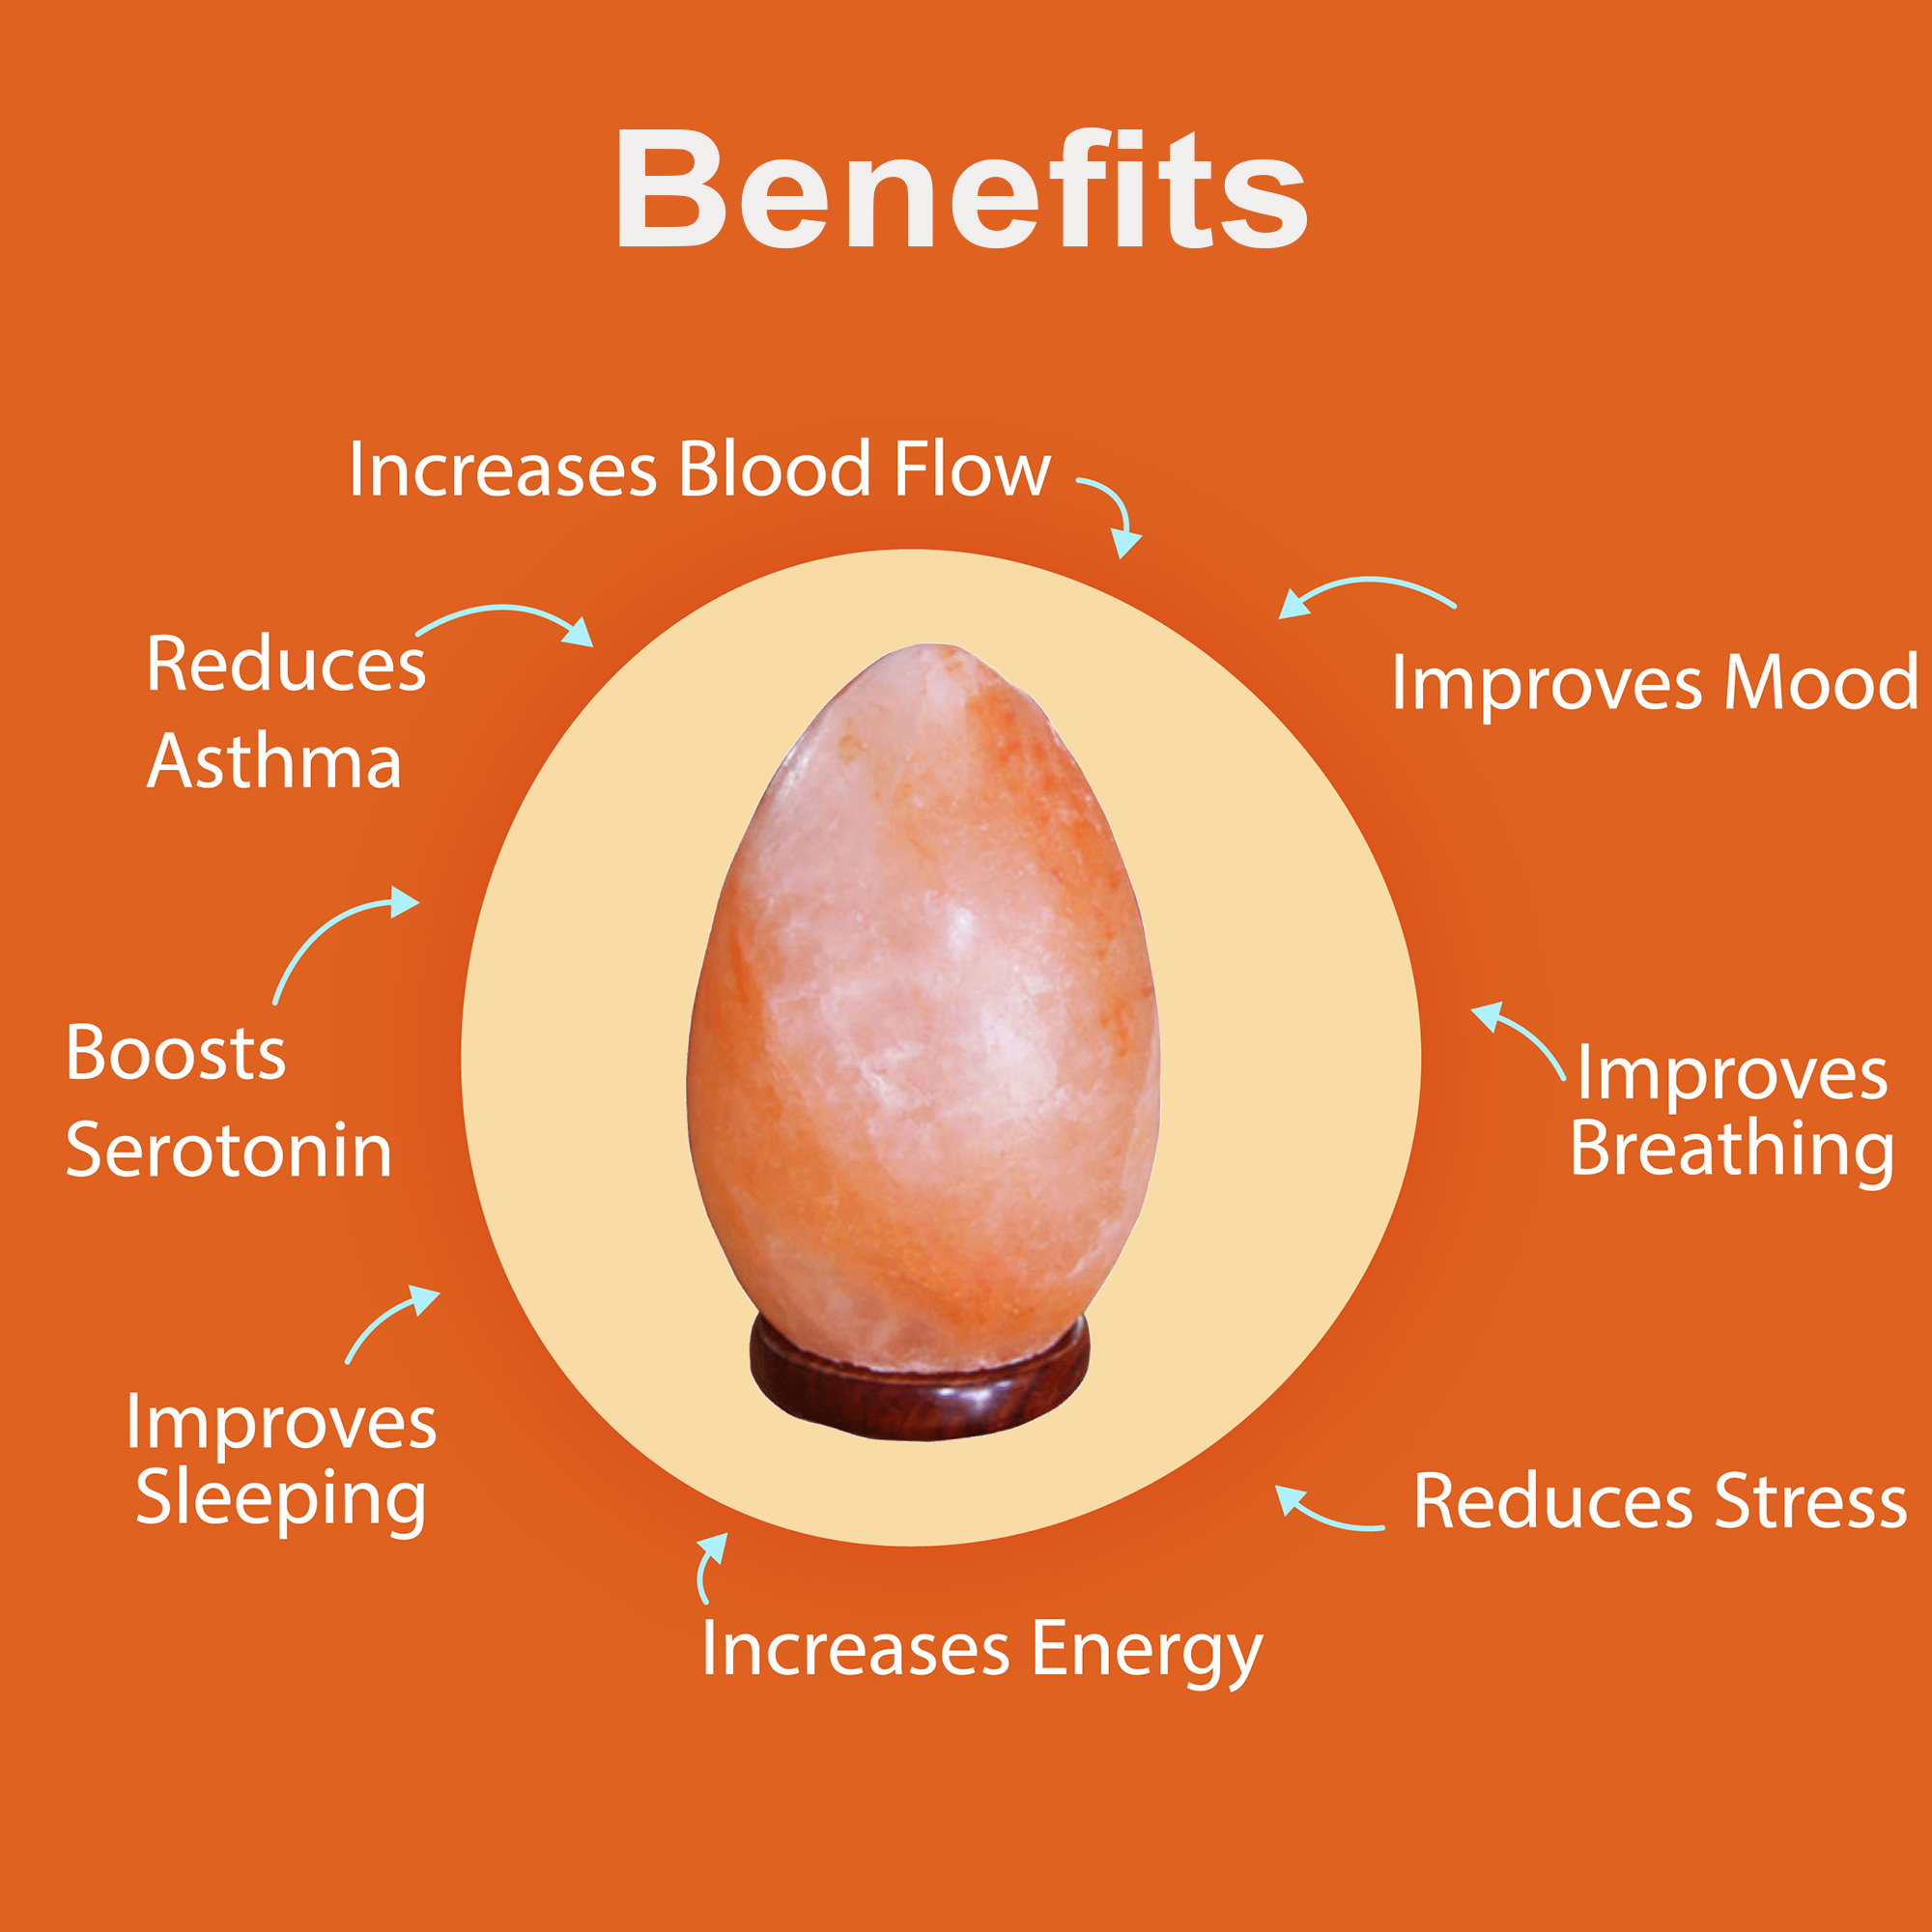 7 benefits 43 - Saltpur Himalayan Salts